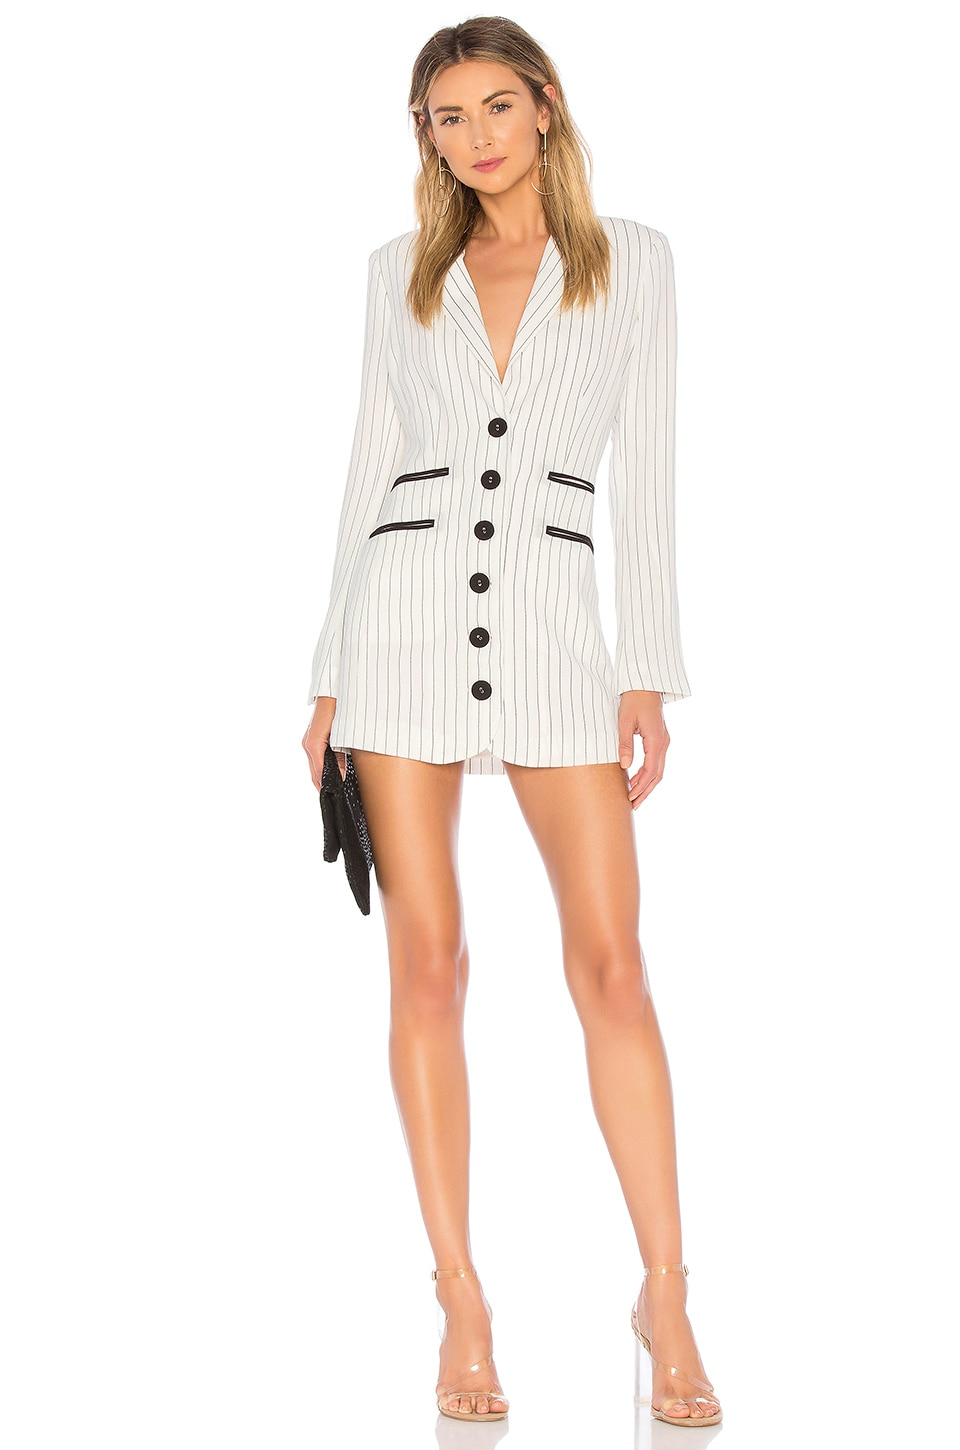 h:ours Dux Dress in White & Black